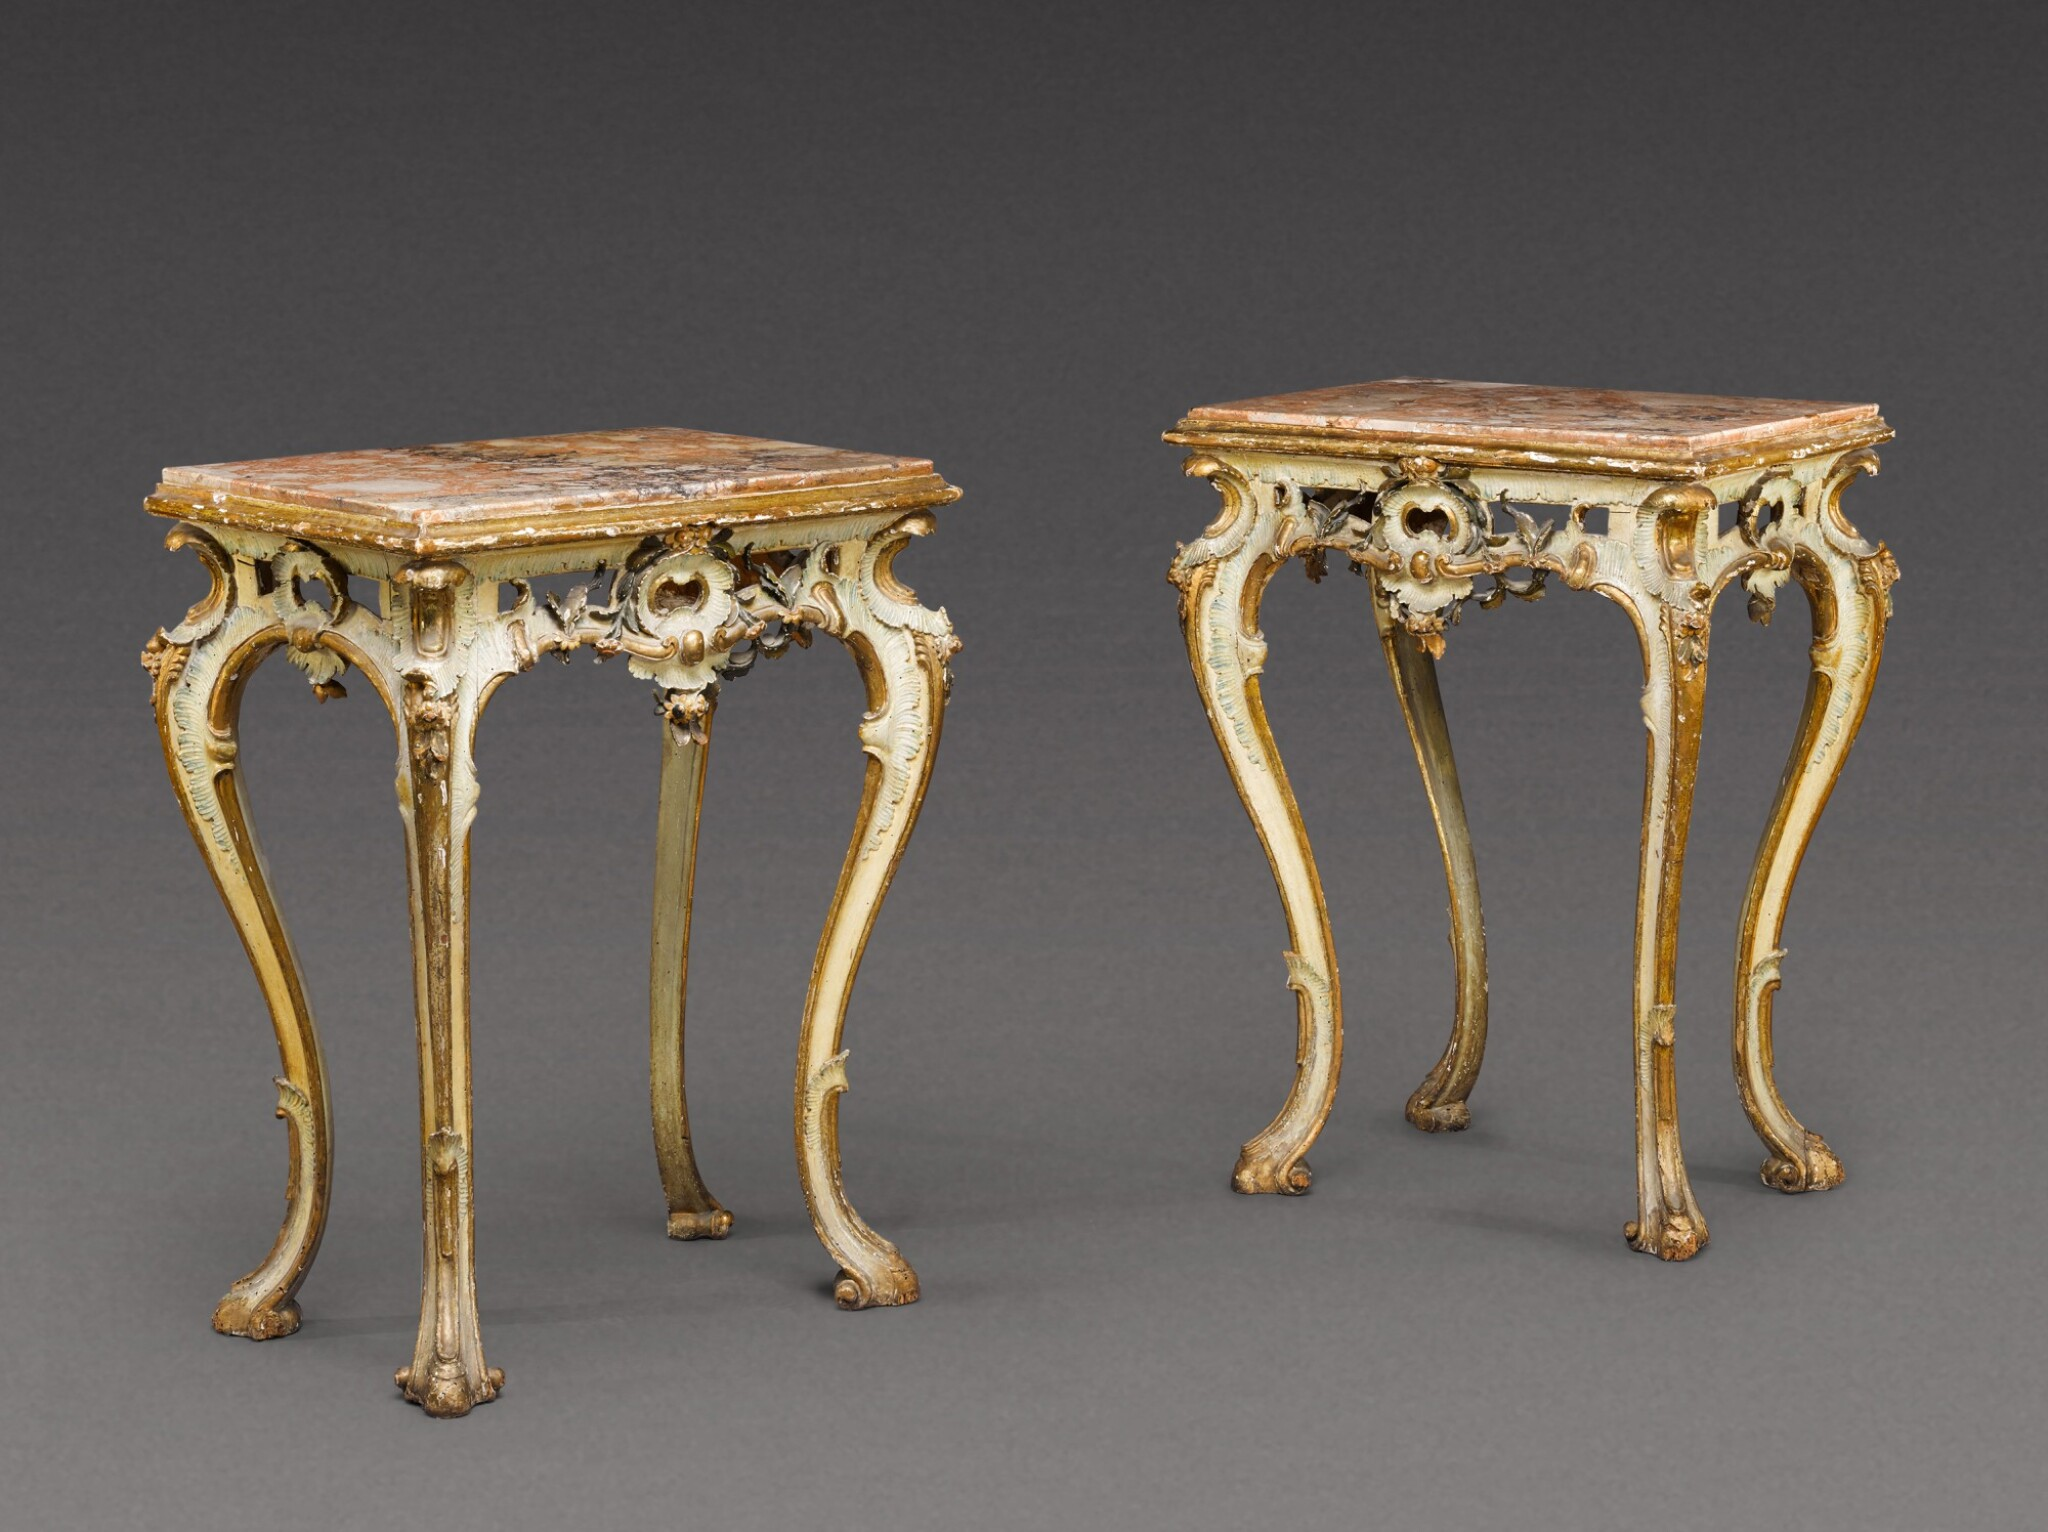 View 1 of Lot 180. A pair of South Italian carved parcel-gilt and painted console tables, Neapolitan, circa 1760.